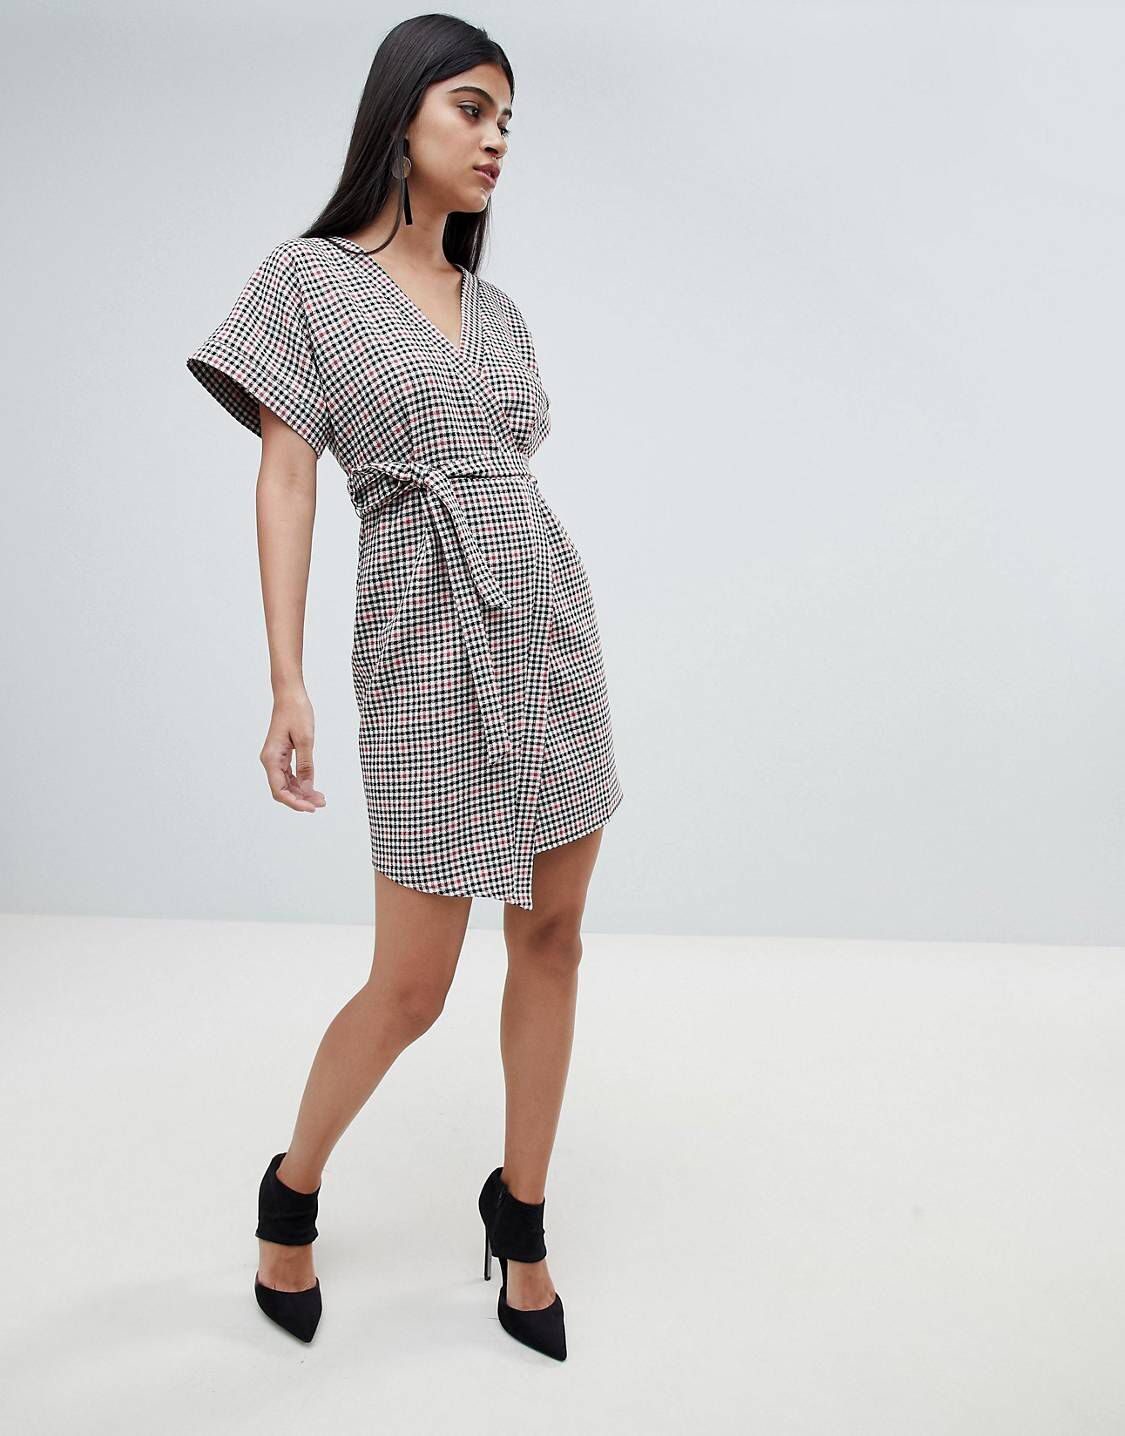 13628dc7bd Just when I thought I didn t need something new from ASOS